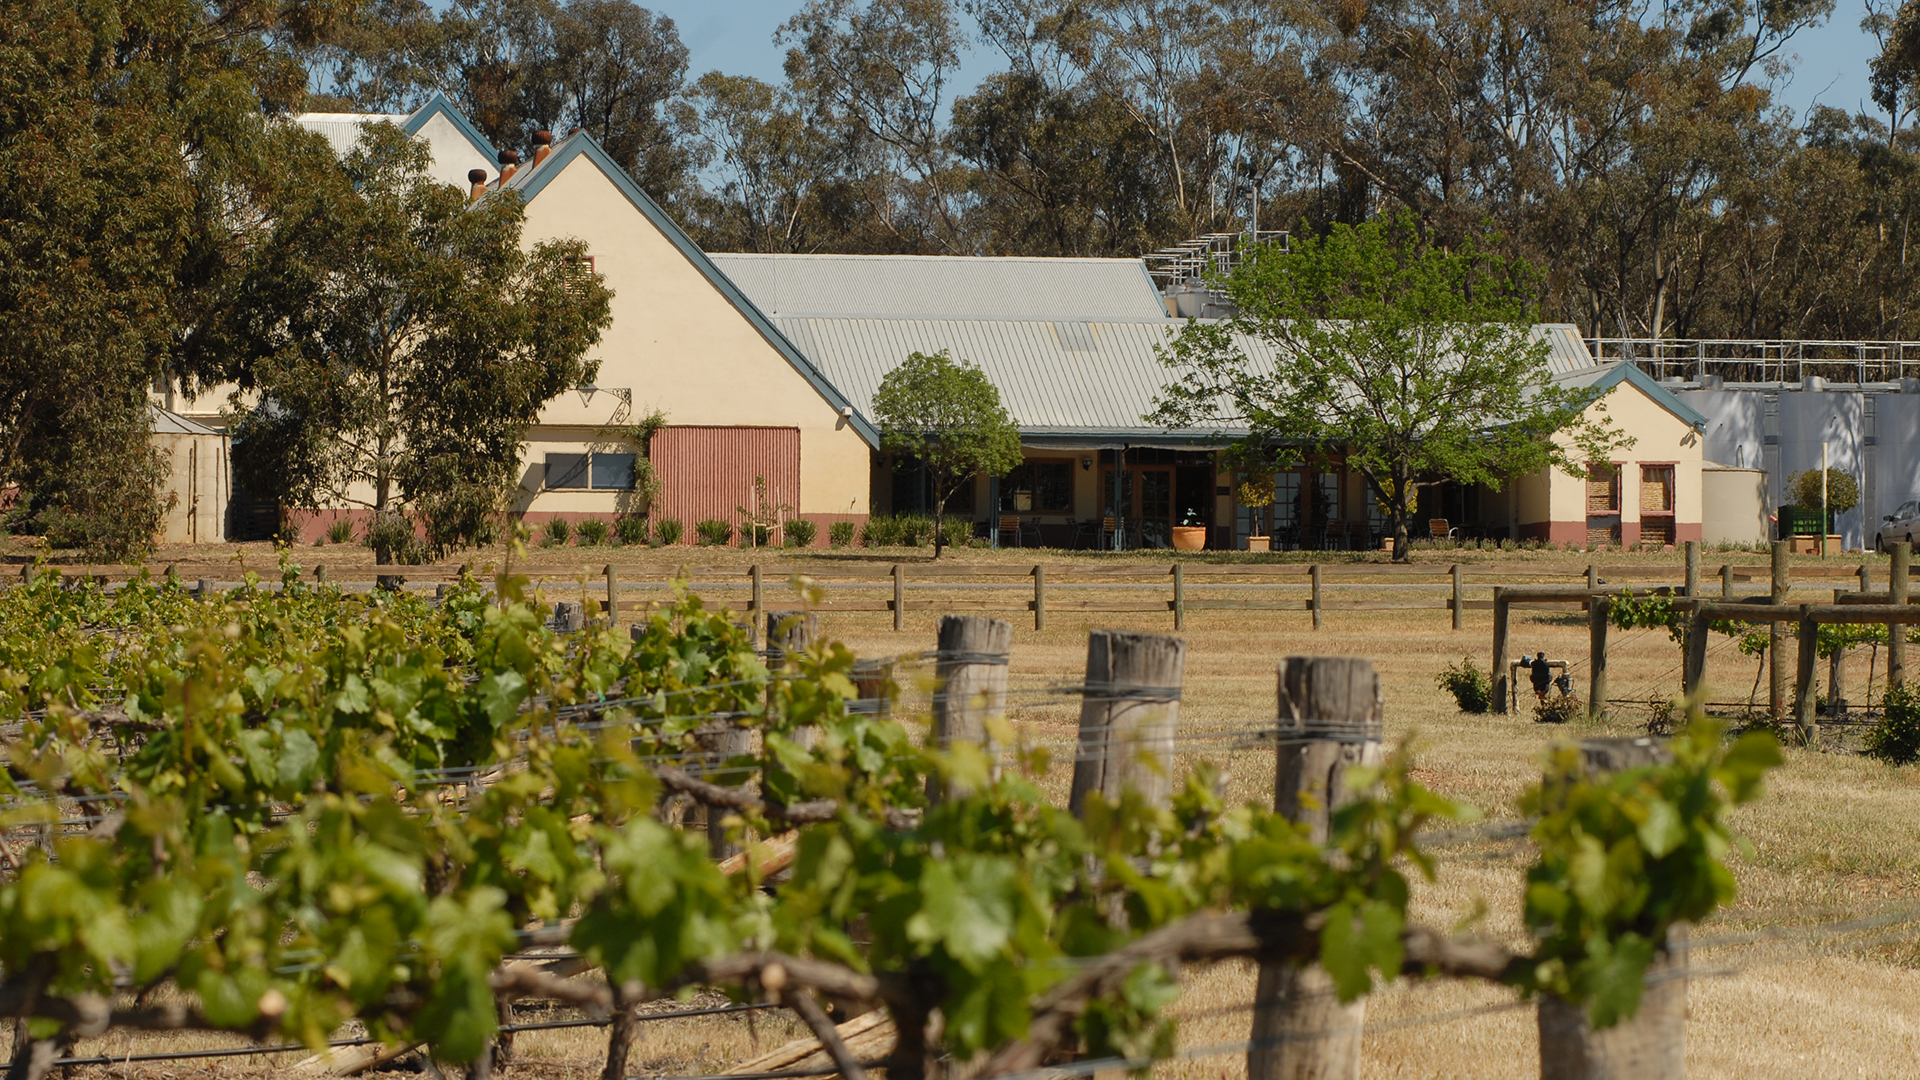 House and vineyards at Balgownie Estate